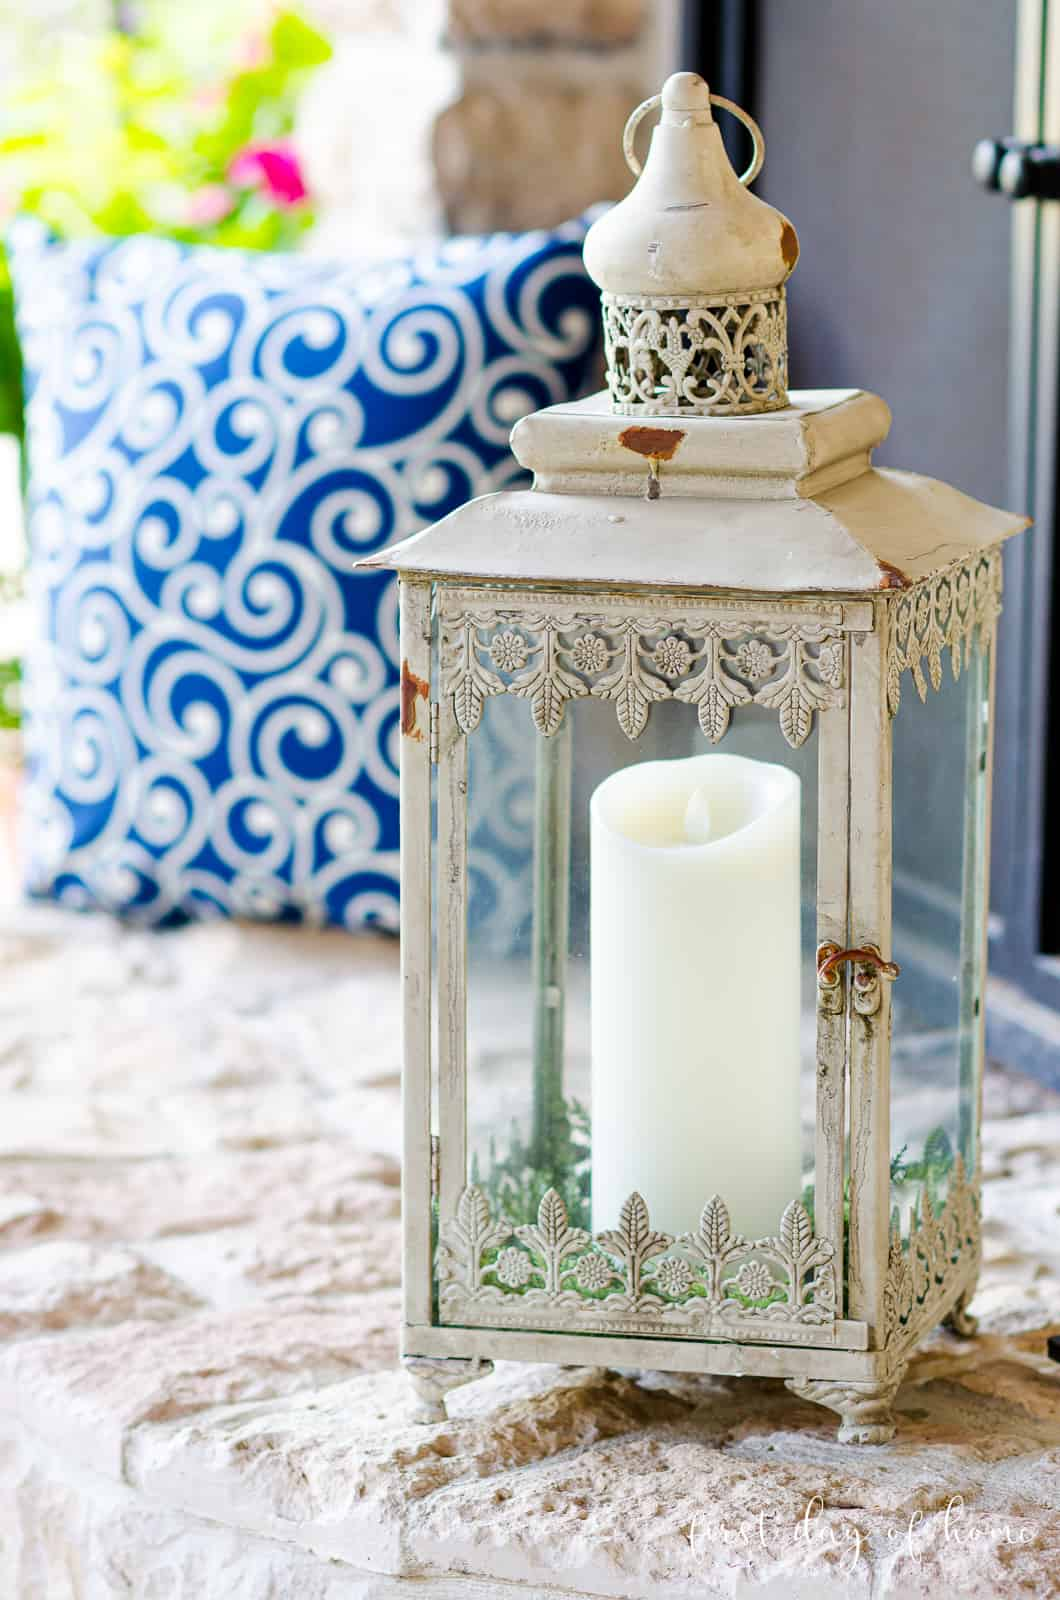 Neutral lantern with flameless pillar candle on outdoor fireplace with blue swirl pillow in background